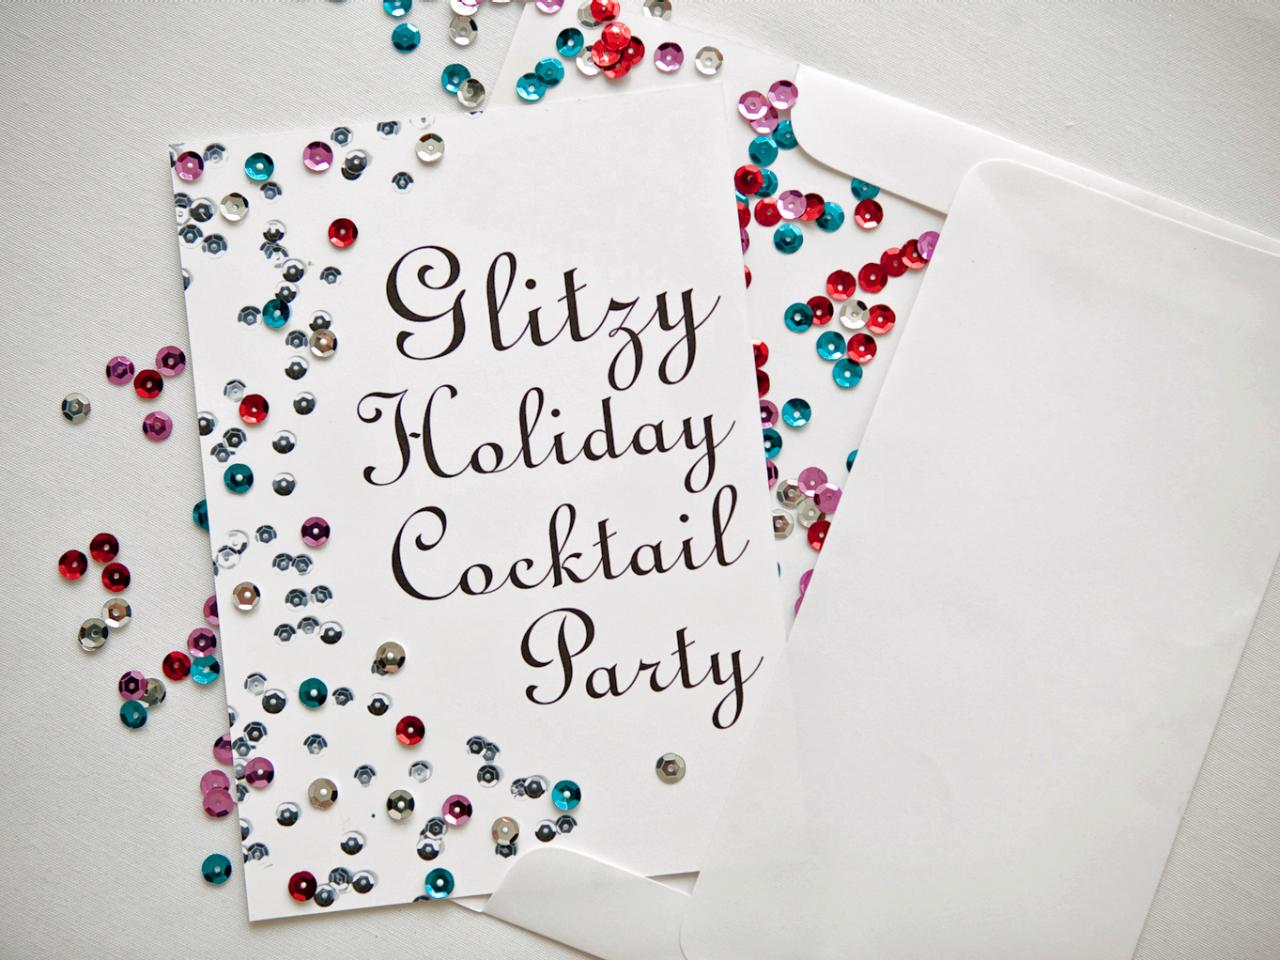 How To Make Holiday Cocktail Party Invitations